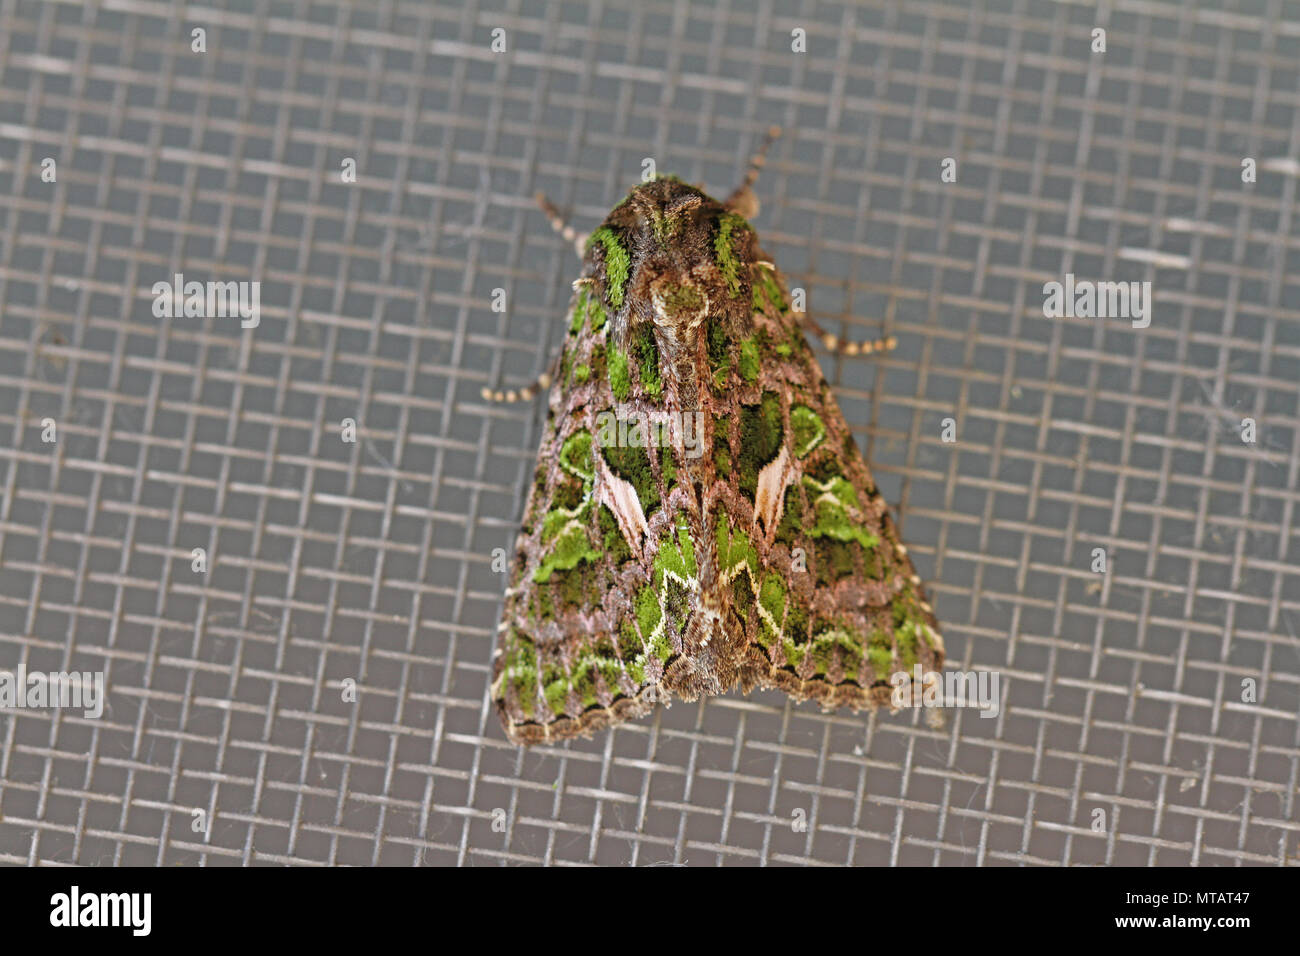 orache moth Latin trachea atriplicis a type of noctuid moth at rest on a screen door in Italy a continental moth rarely seen in mainland Britain - Stock Image